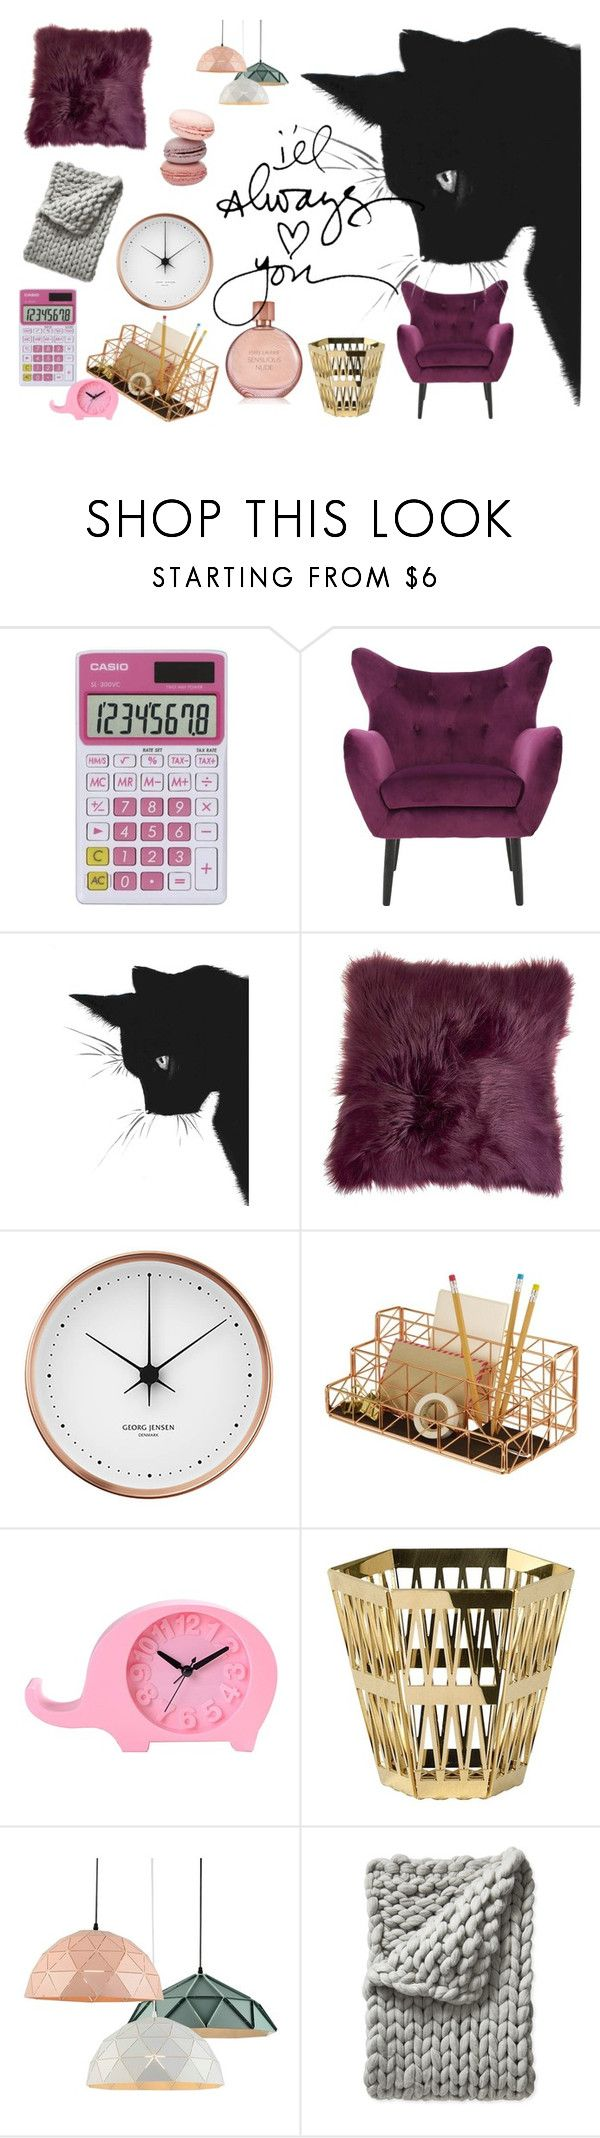 """""""home"""" by cirlogea-ana ❤ liked on Polyvore featuring Casio, Georg Jensen, Design Ideas, Ghidini 1961, Serena & Lily and Estée Lauder"""